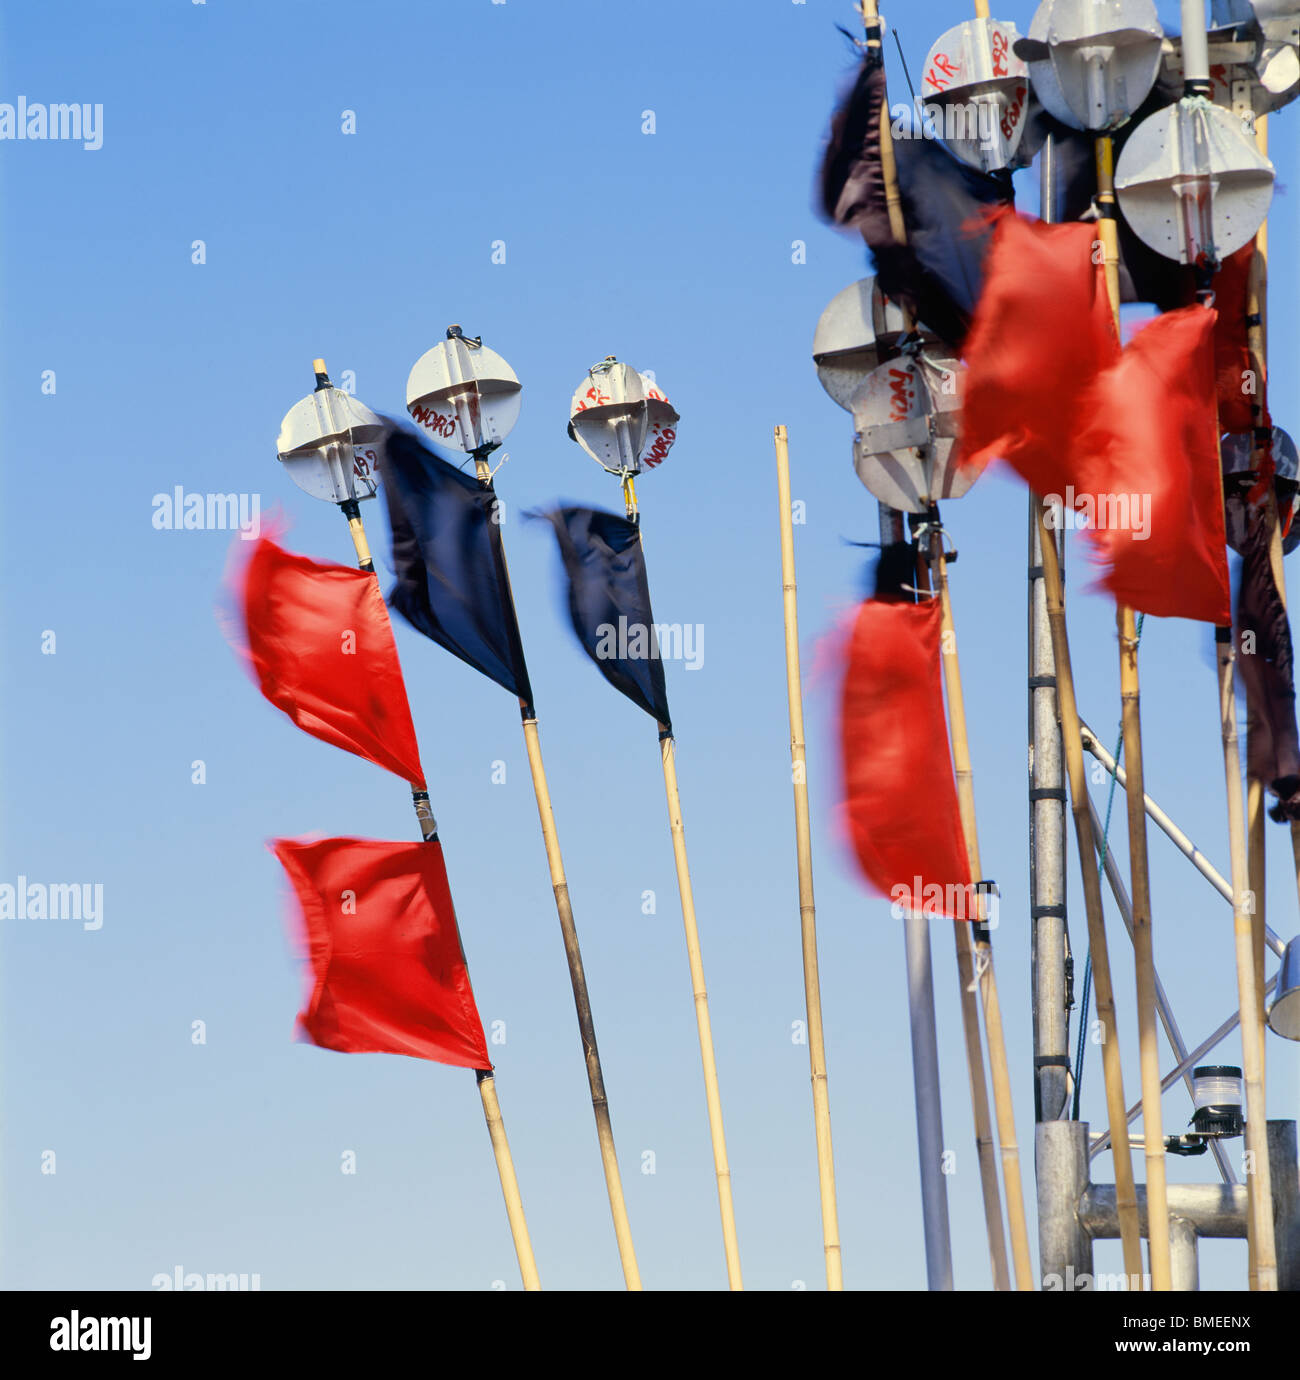 Poles with fishing flags - Stock Image